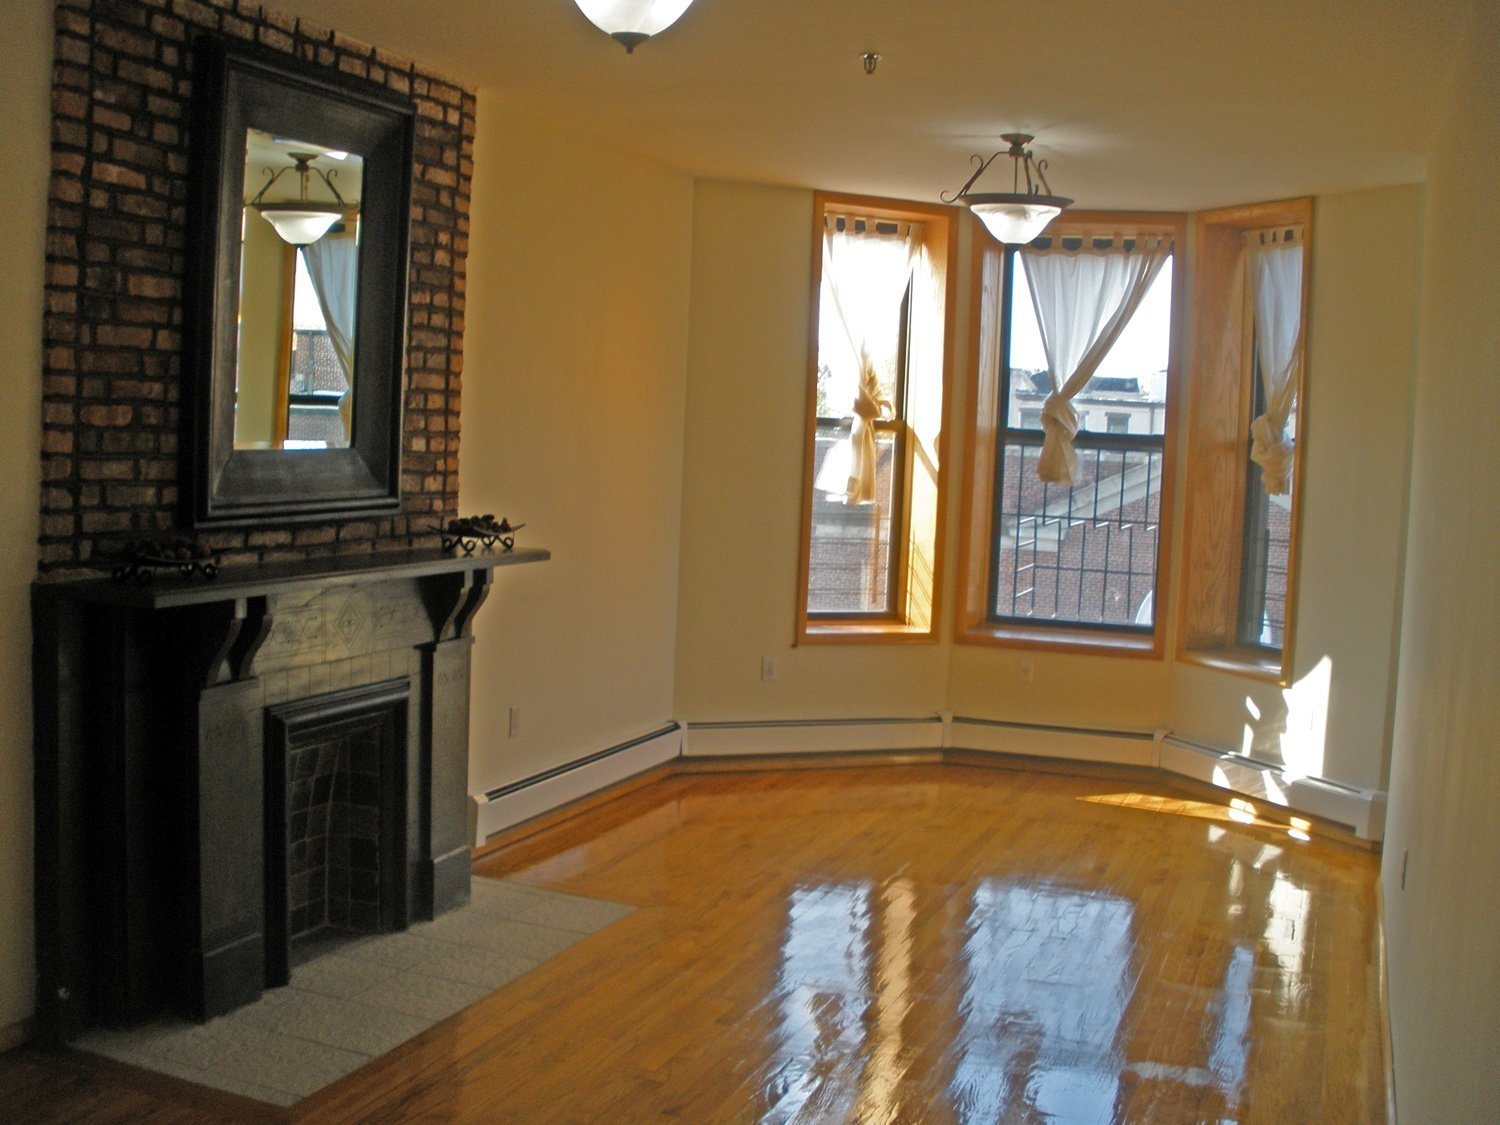 Bed Stuy 1 Bedroom Apartment For Rent Brooklyn CRG3118